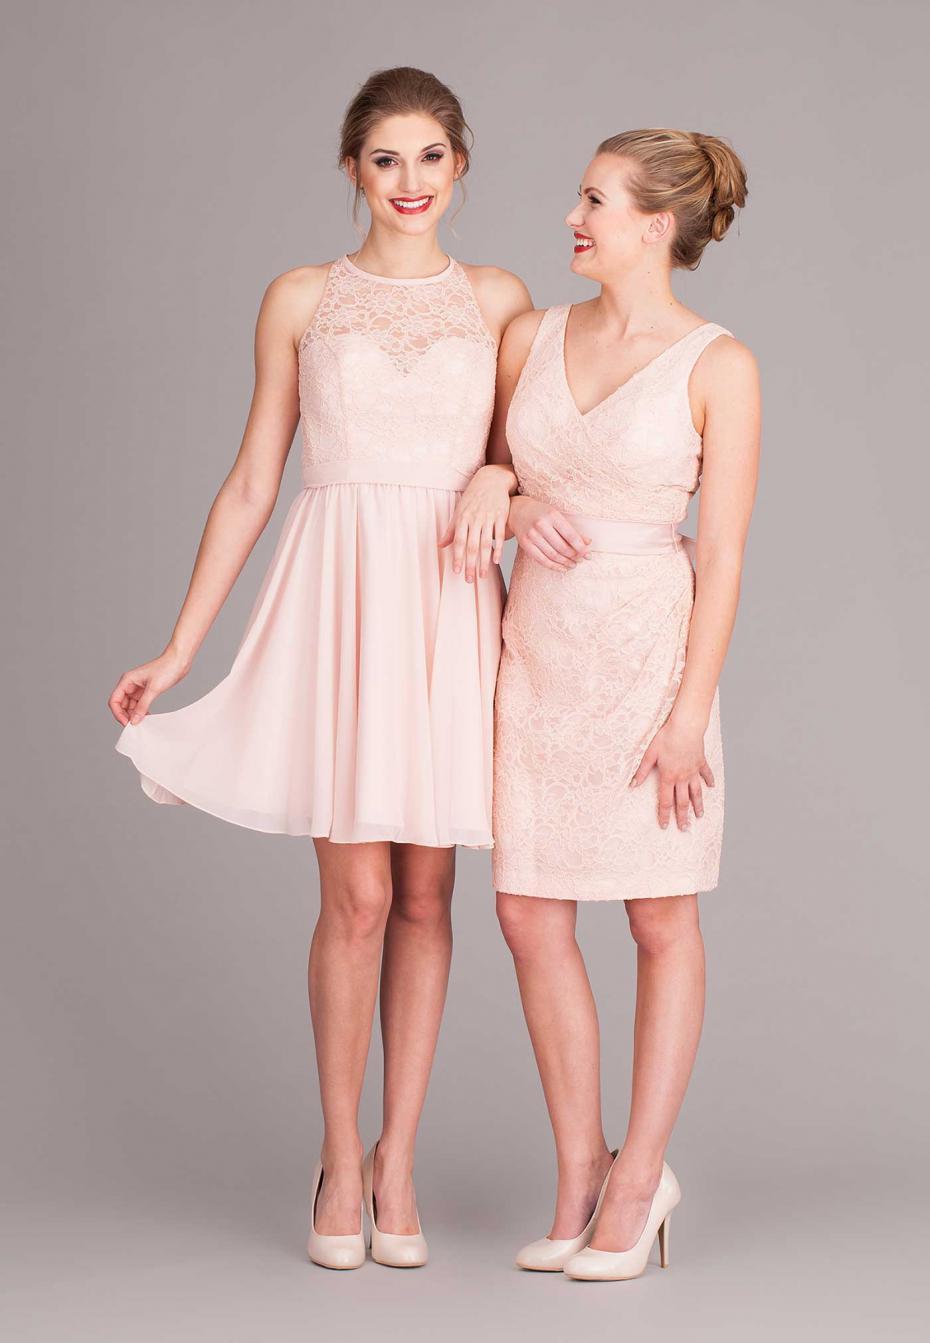 Pink formal dresses for juniors reviews online shopping for Brand name wedding dresses